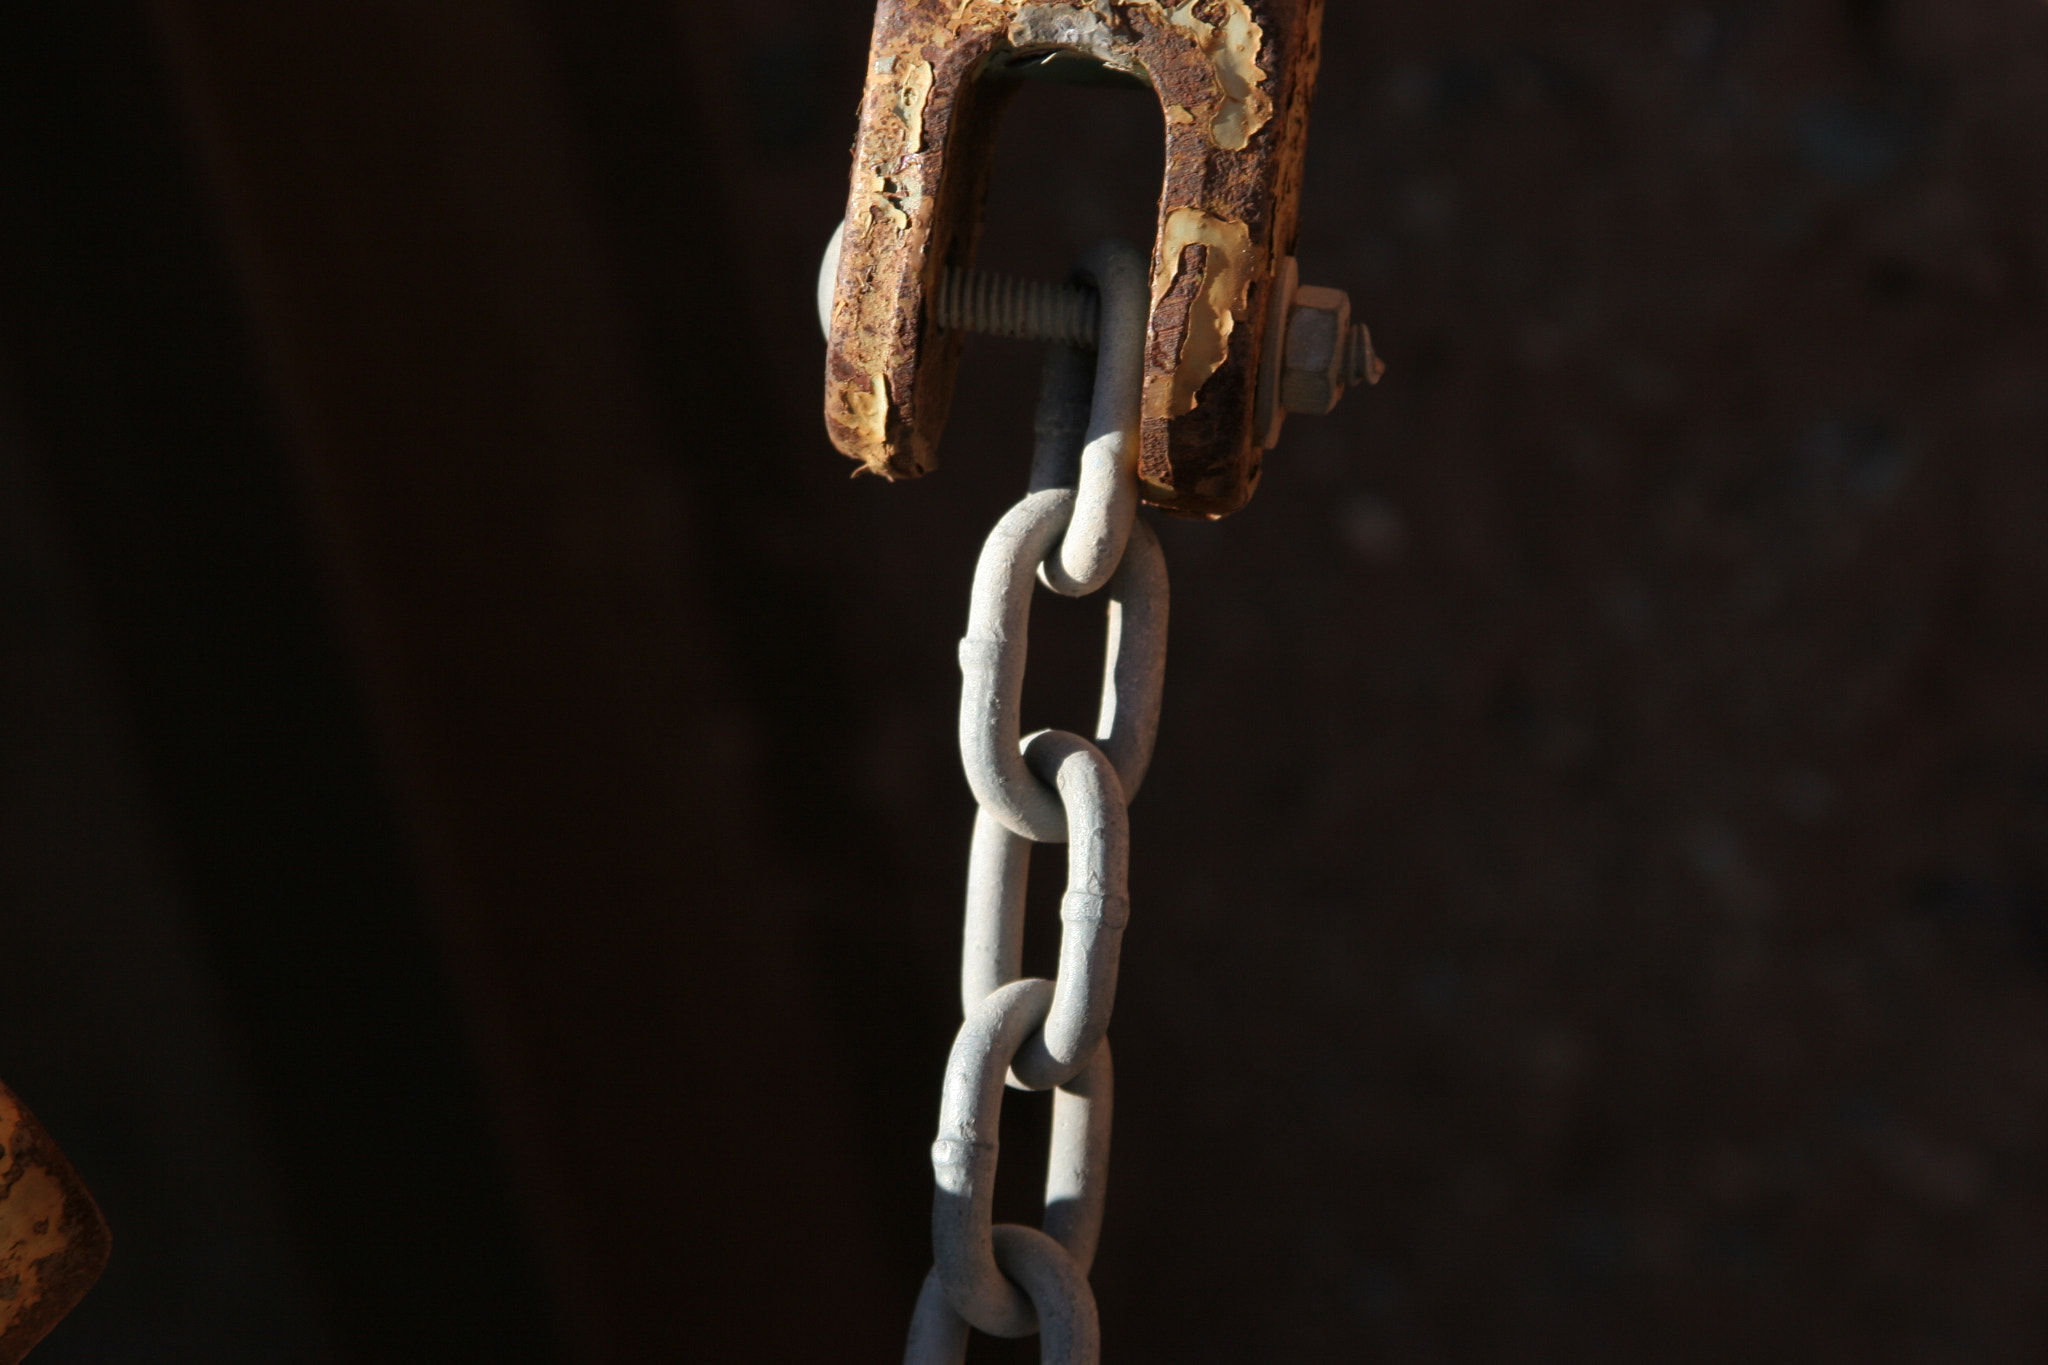 Photograph Chain by Craig Parks on 500px